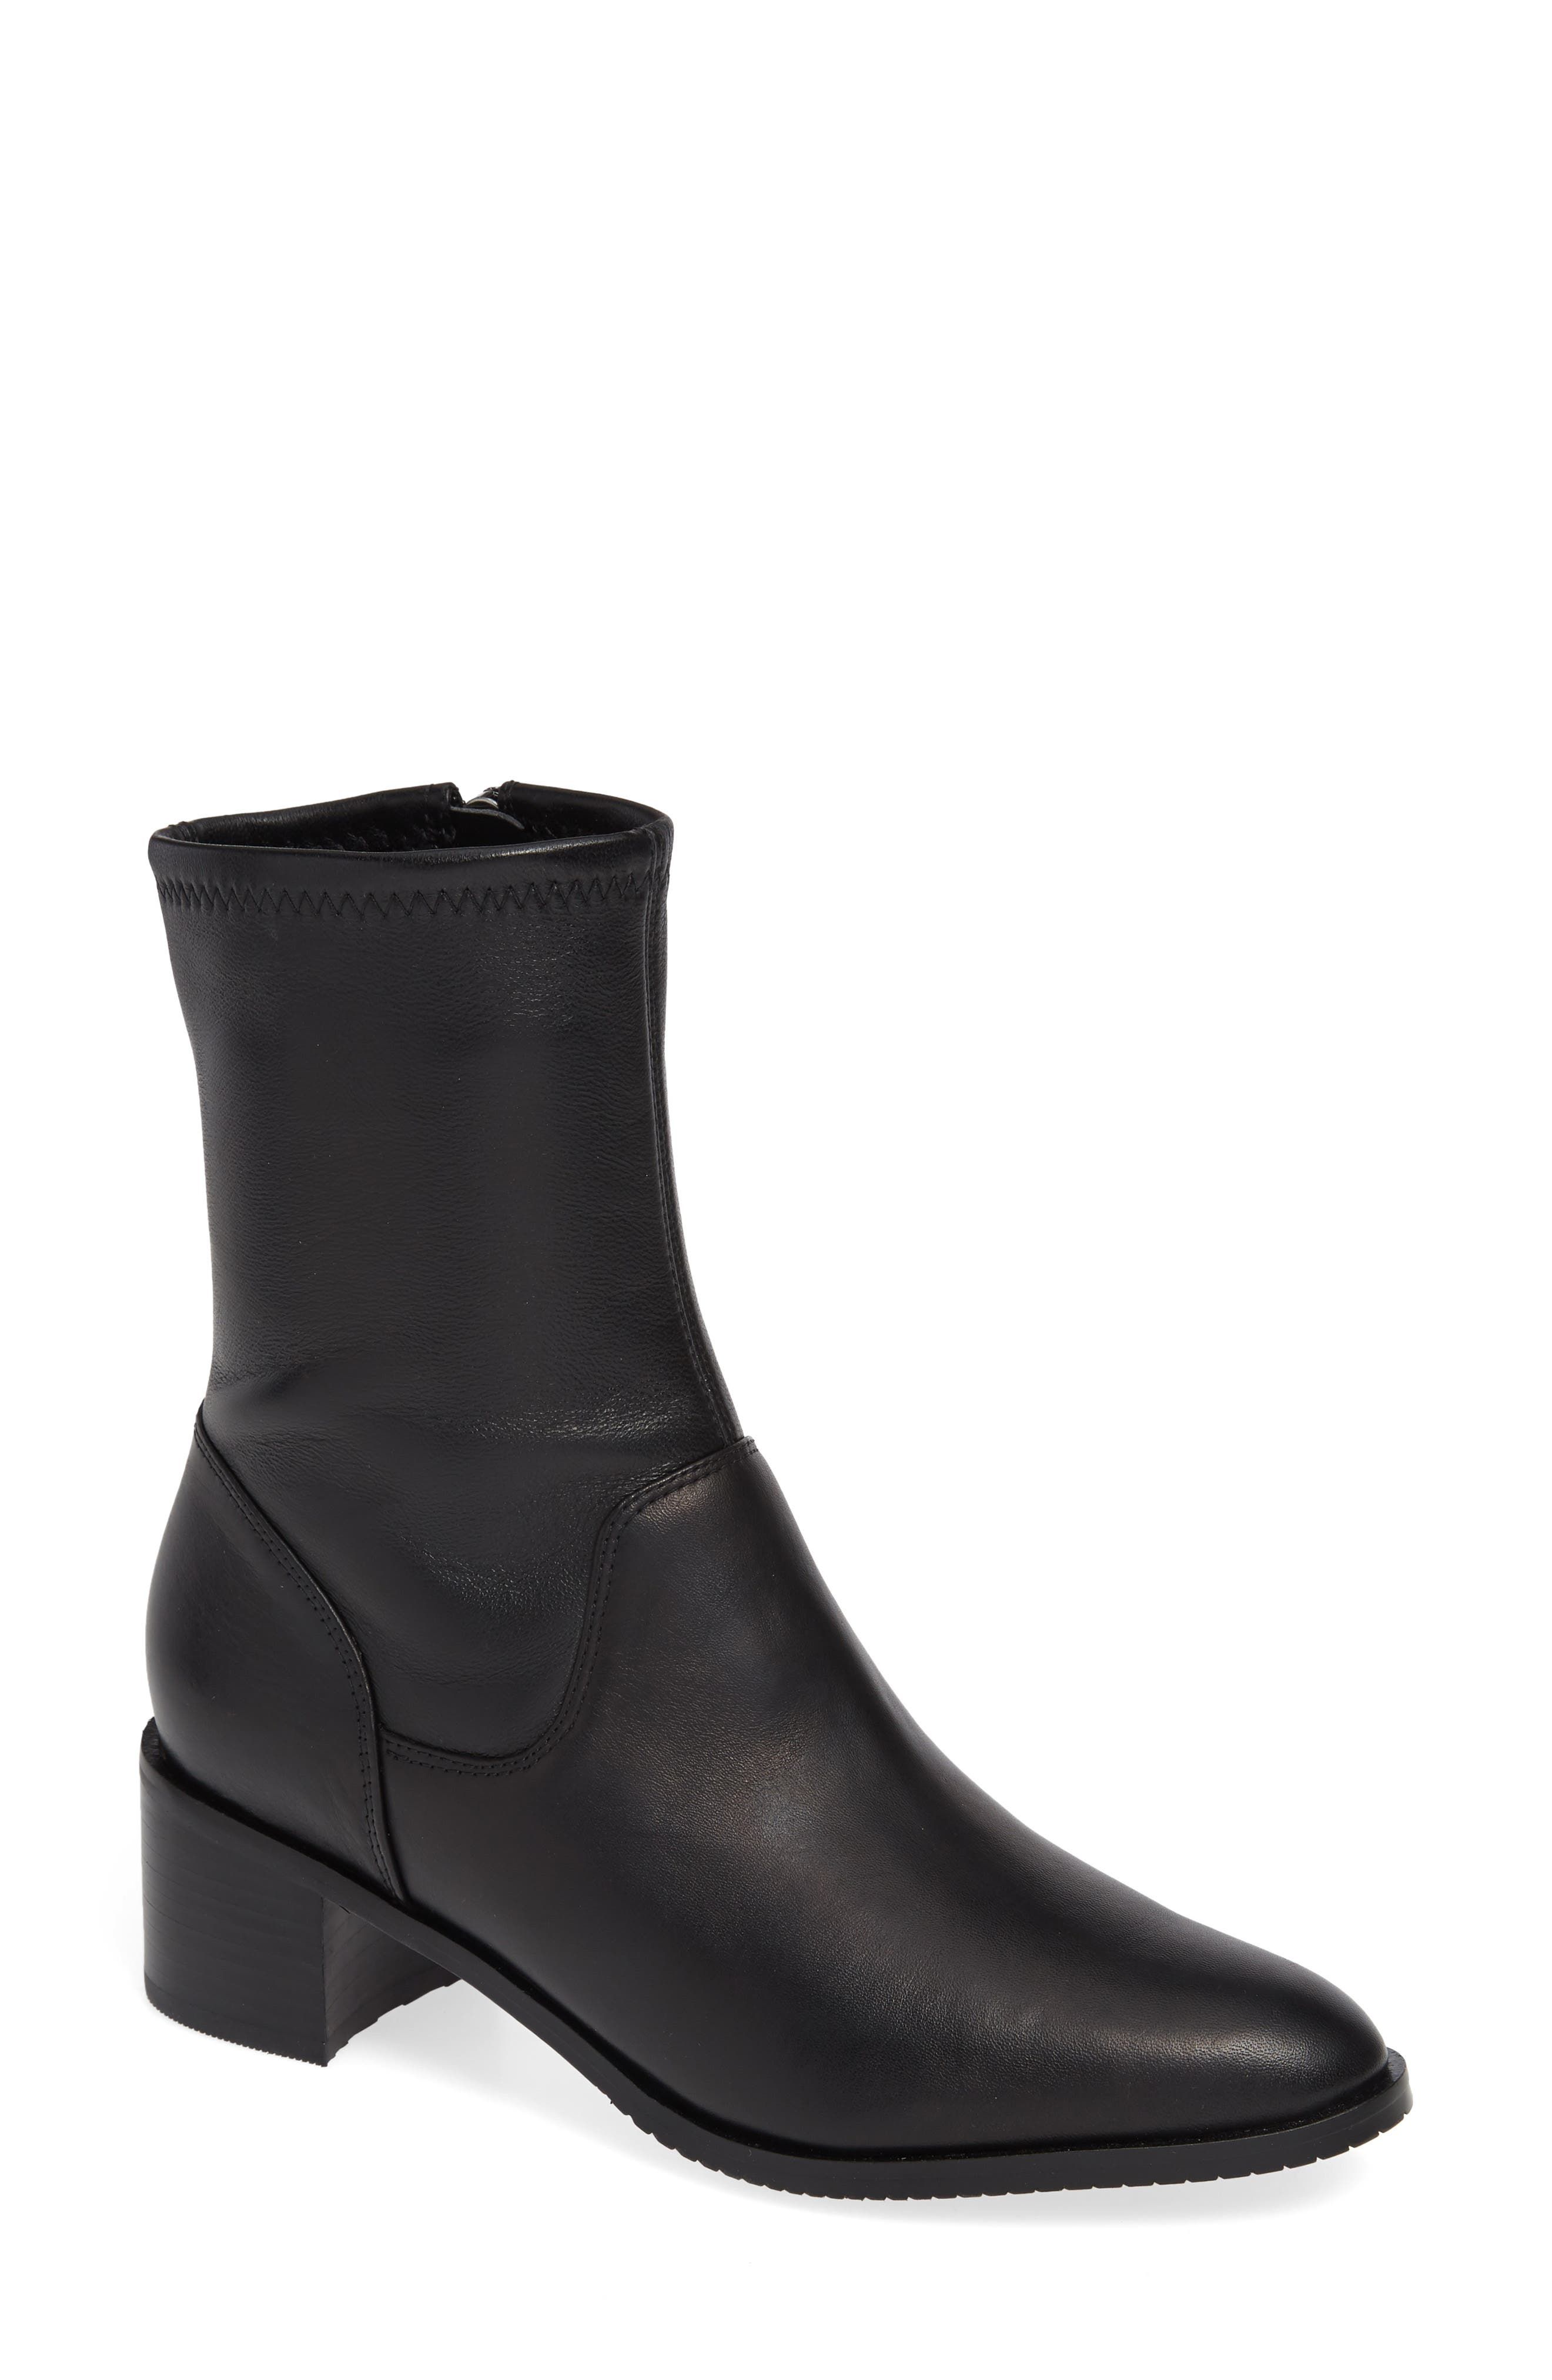 Poise Leah Boot,                         Main,                         color, BLACK LEATHER